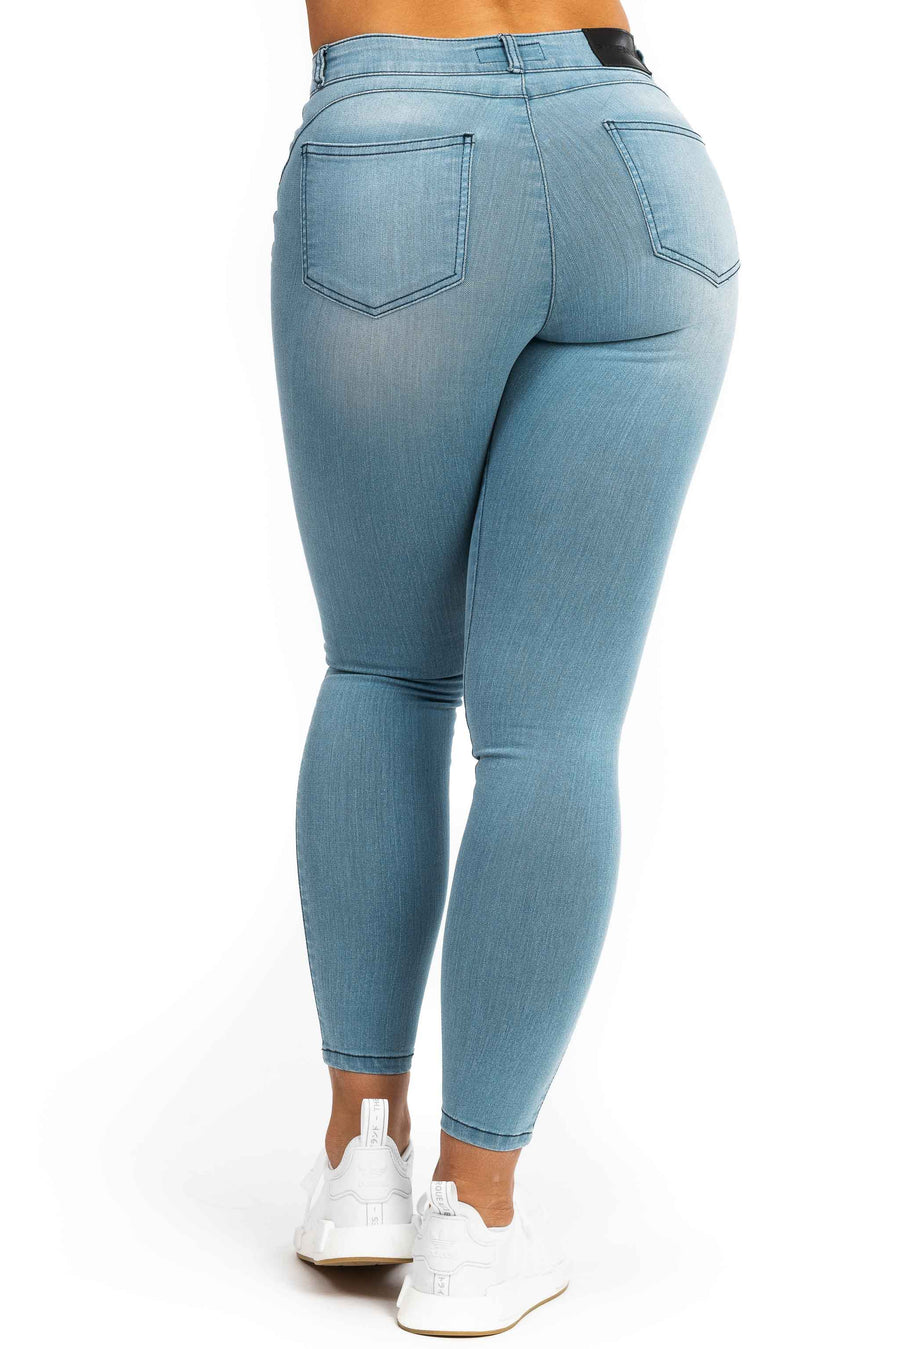 Womens Contour Fitjeans - Bleach Blue